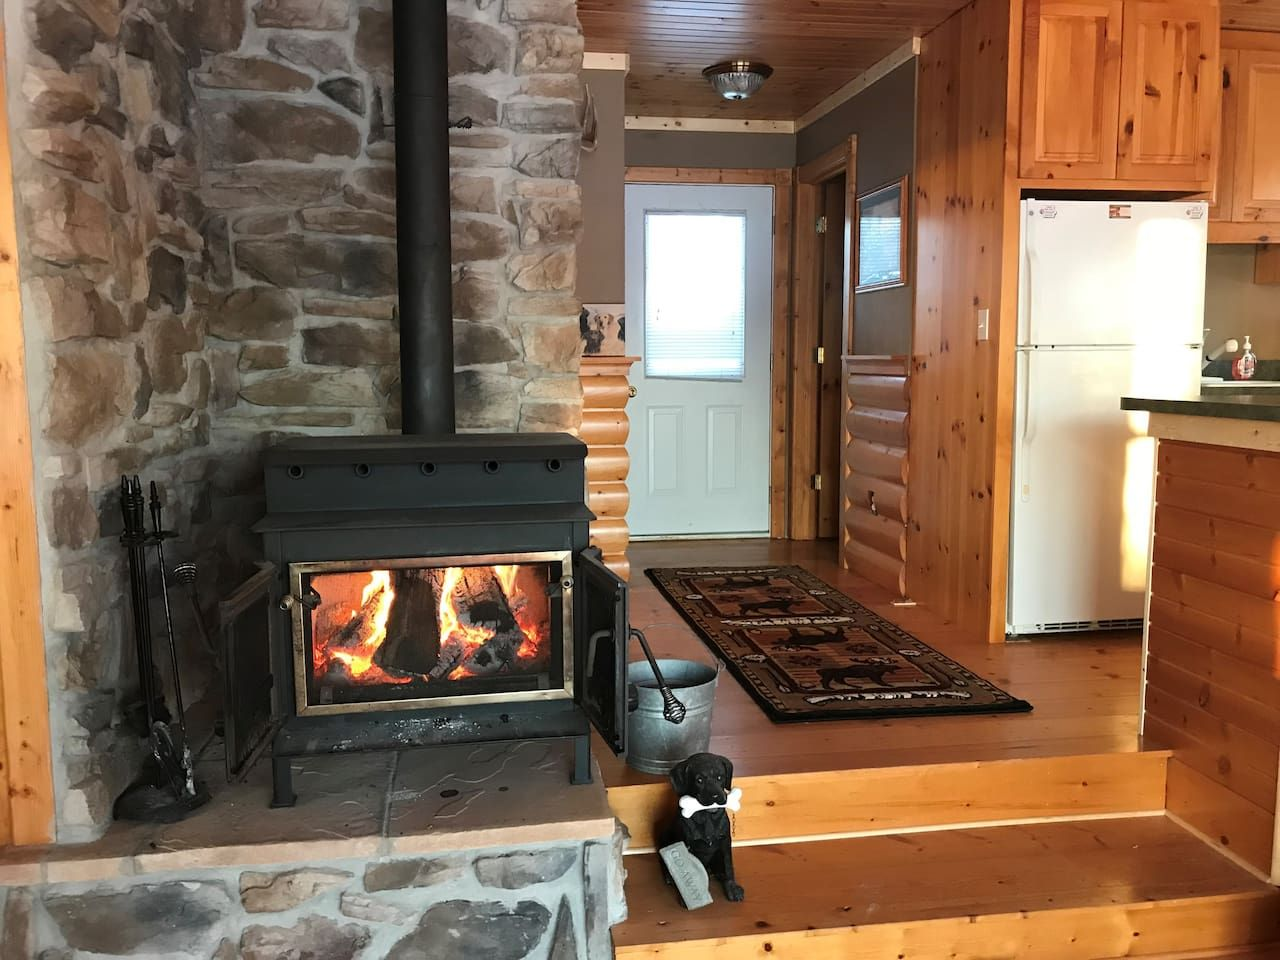 Timber Creek Cabin Cabins For Rent In Keosauqua Iowa United States Timber Creek Cabin Rentals Secluded Cabin